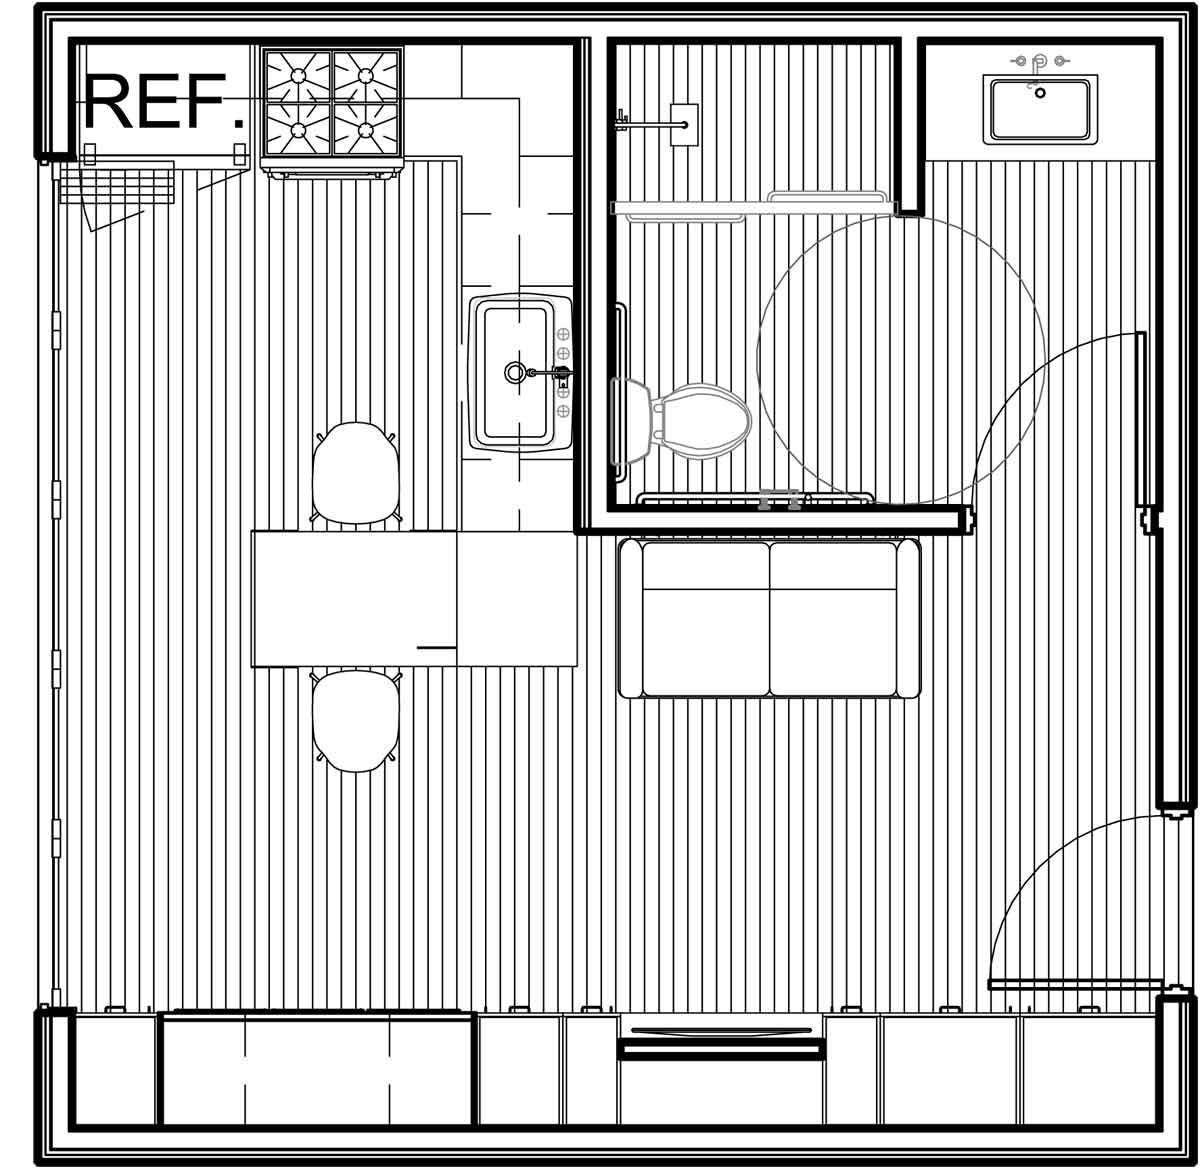 NYC Micro Dwelling SD Unit Floor Plan